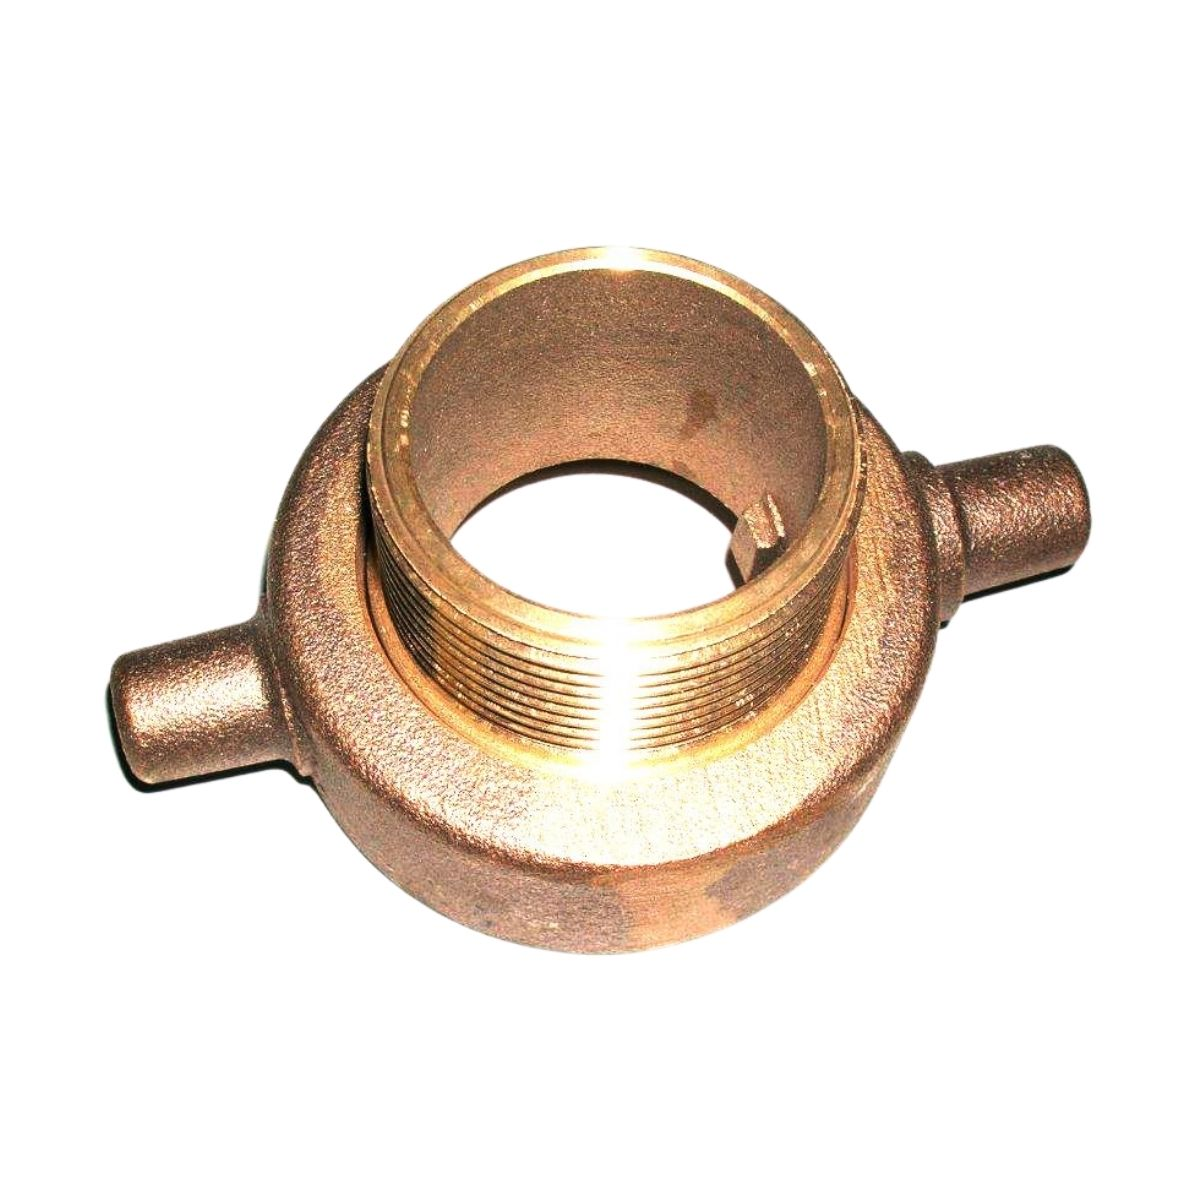 VE1160 Scully Nozzle Adaptor 1.5 Inch Male to 2 Inch Female